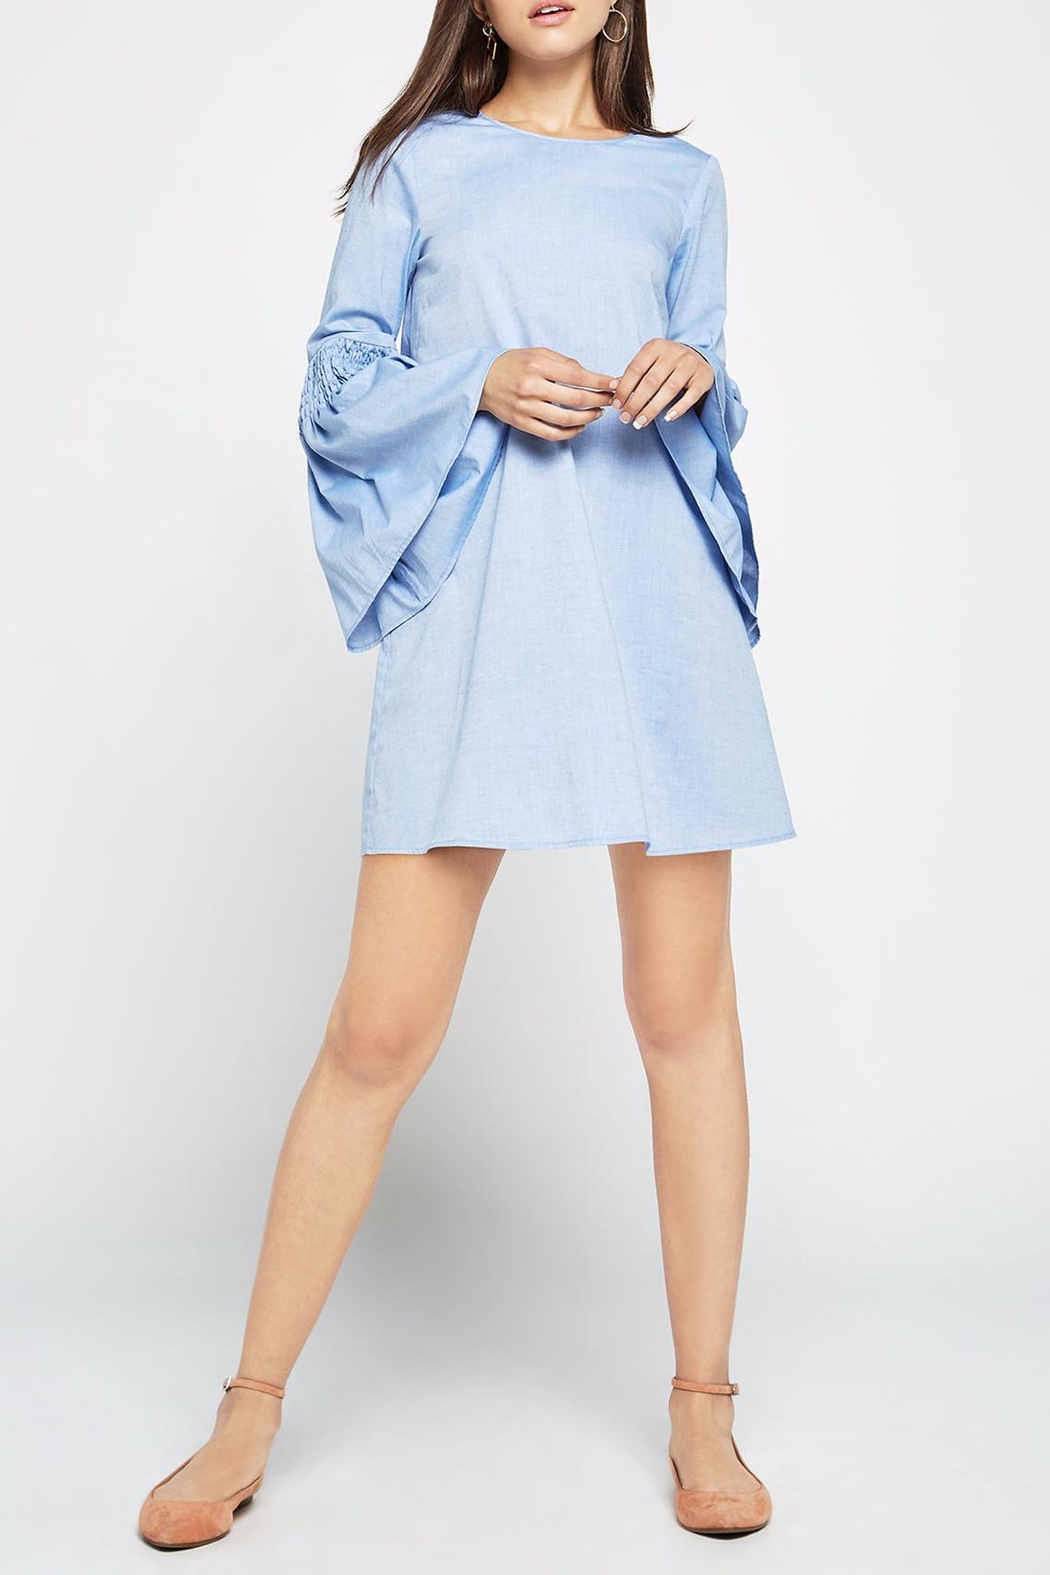 BCBGeneration Chambray Bell A-line Dress - Main Image